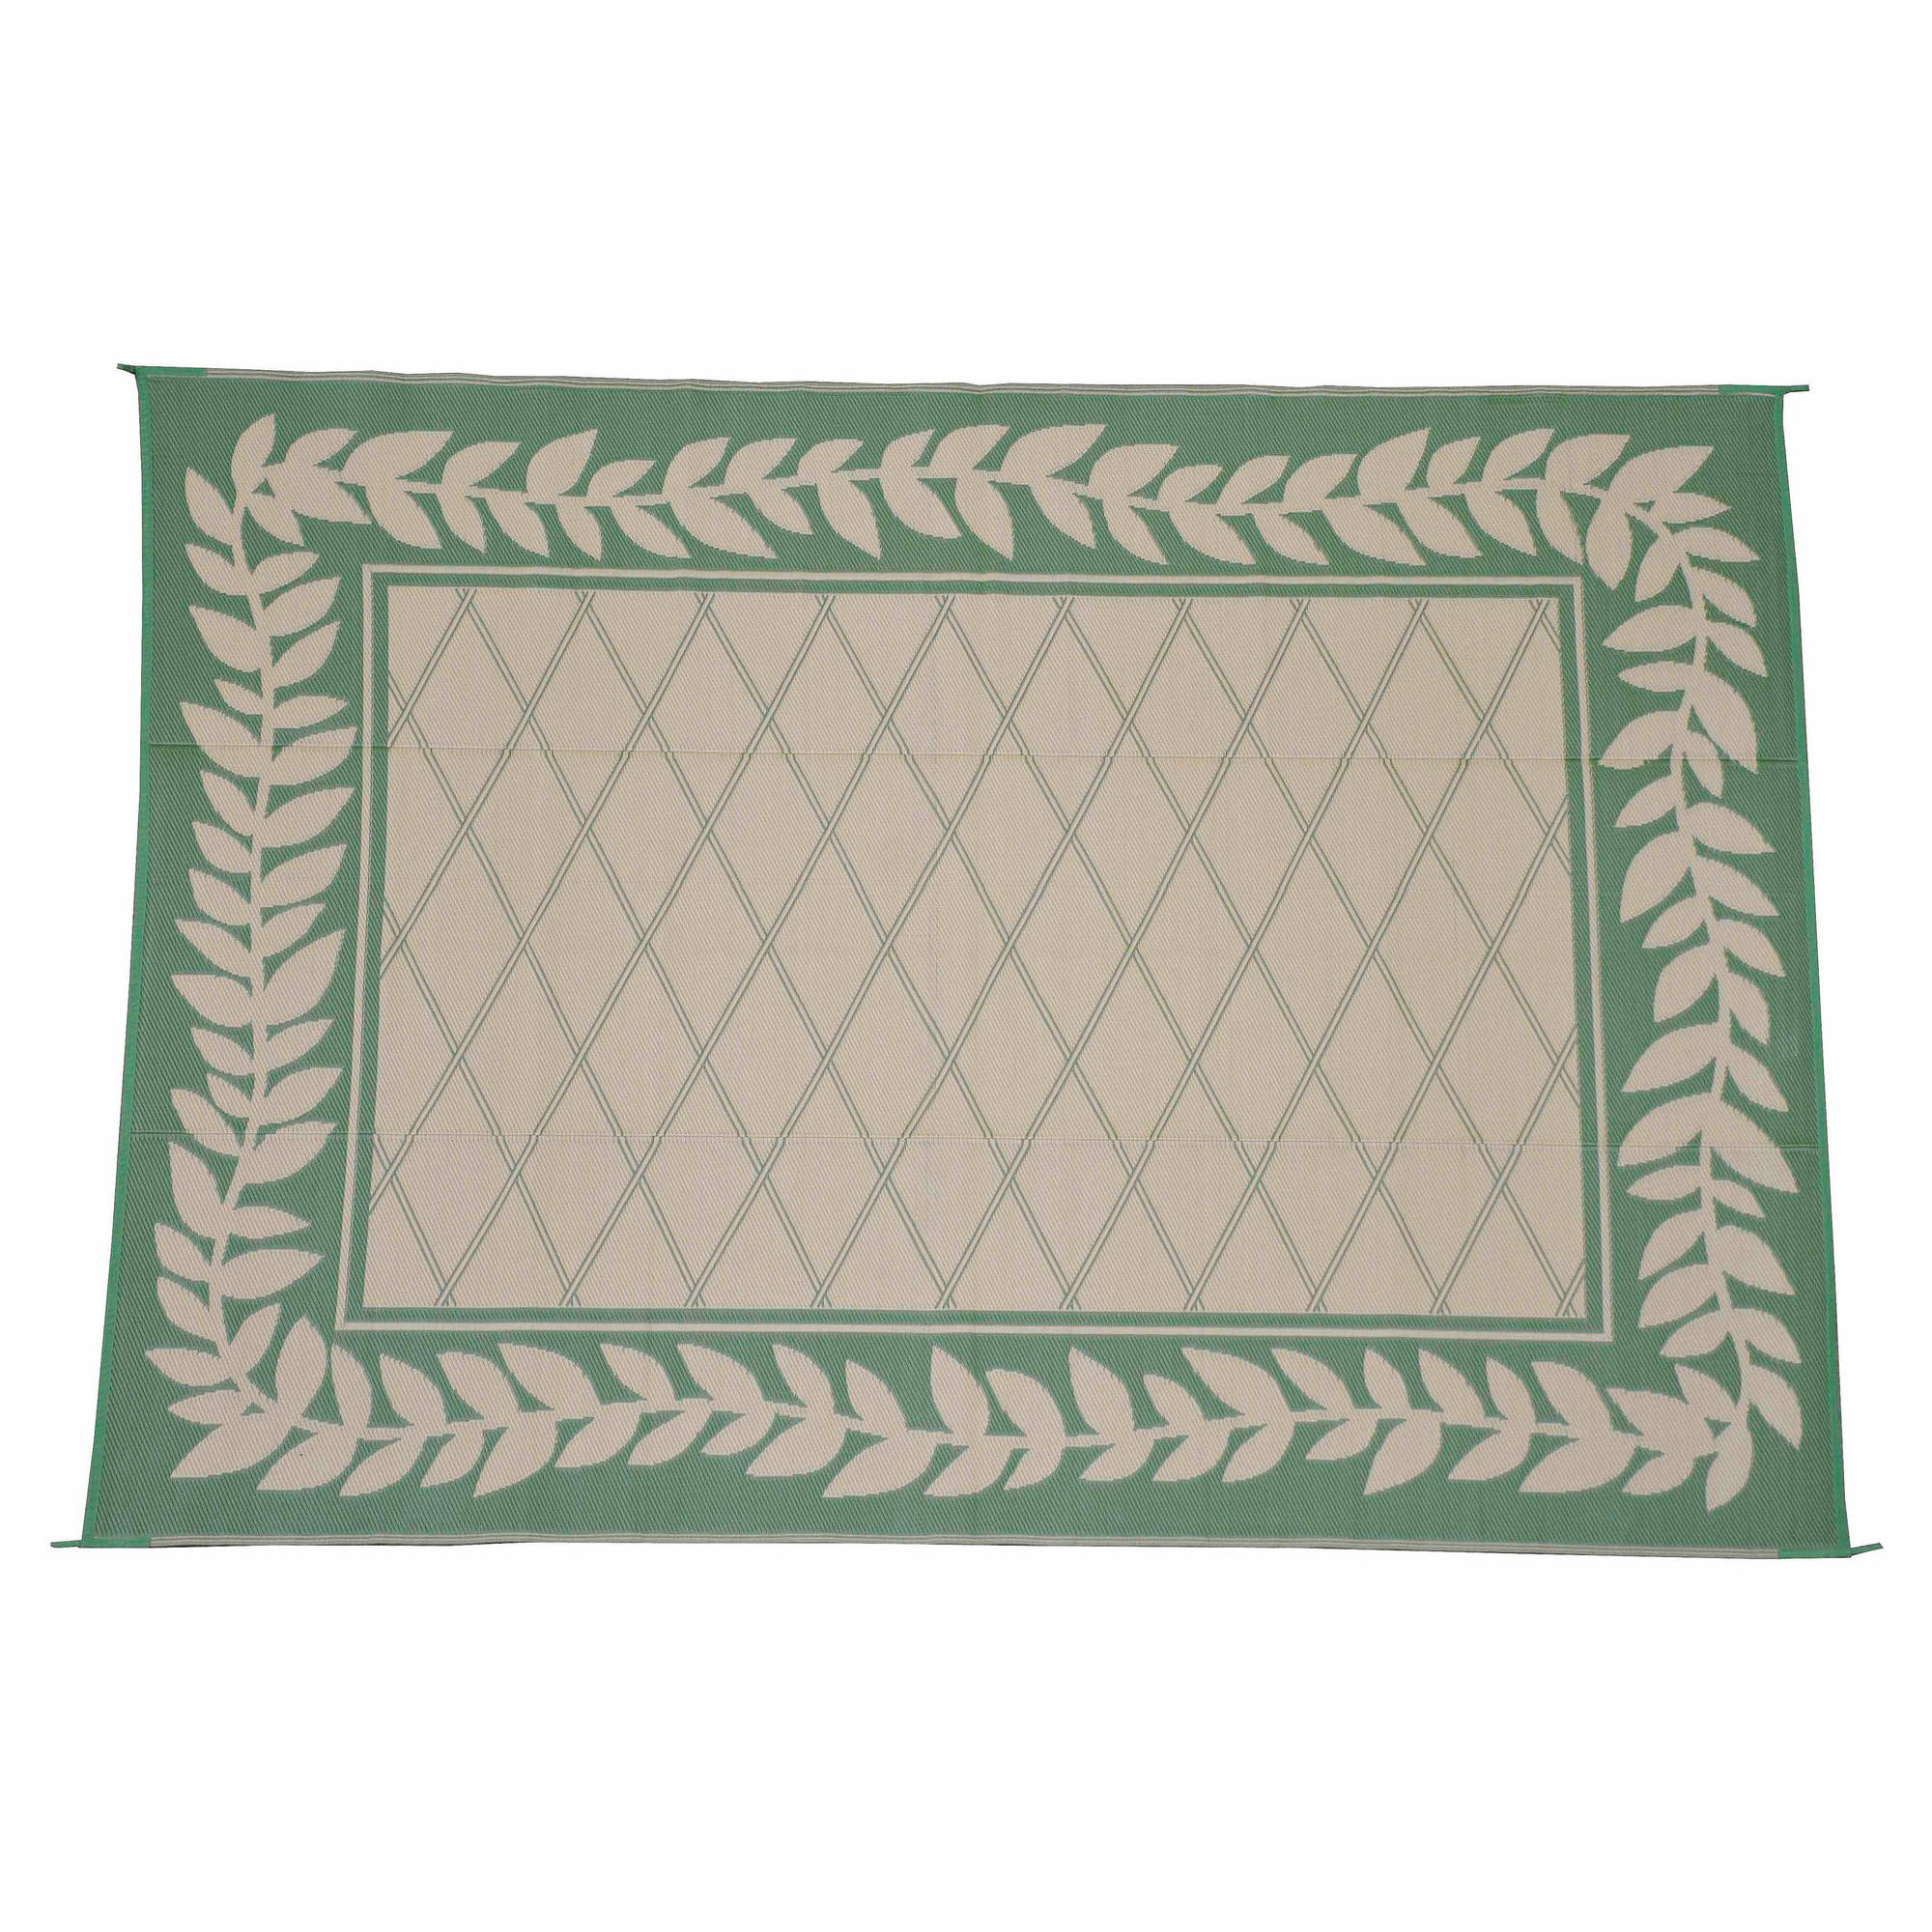 Patio Mats Patio Mat, 9' x 12'